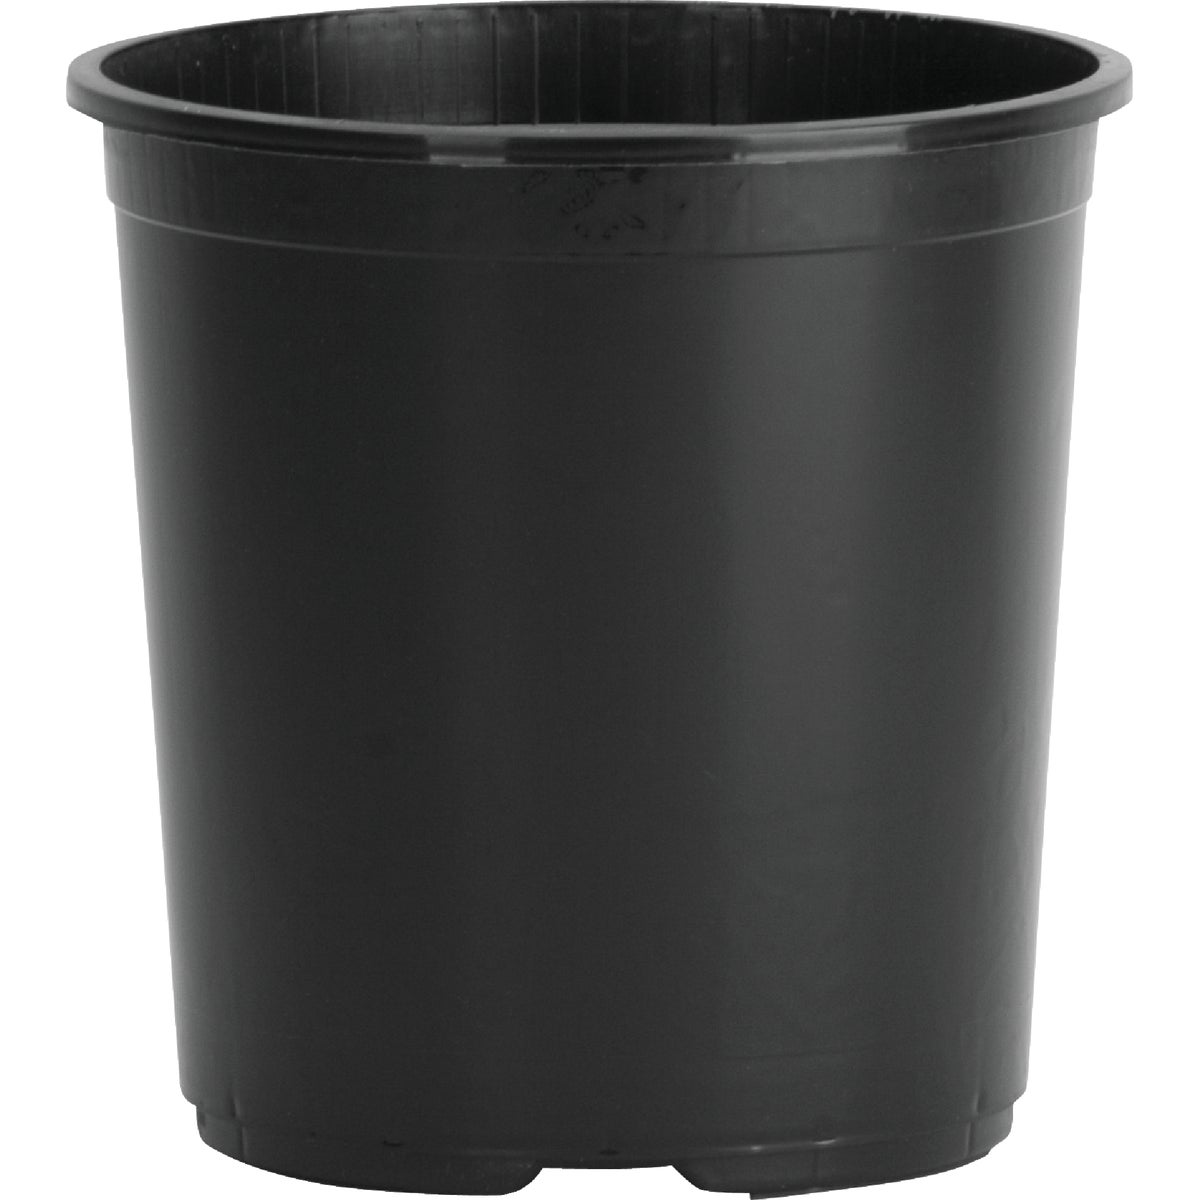 5 GAL BLACK SQUAT POT - NSS005G2G18 by Myers Industries Inc